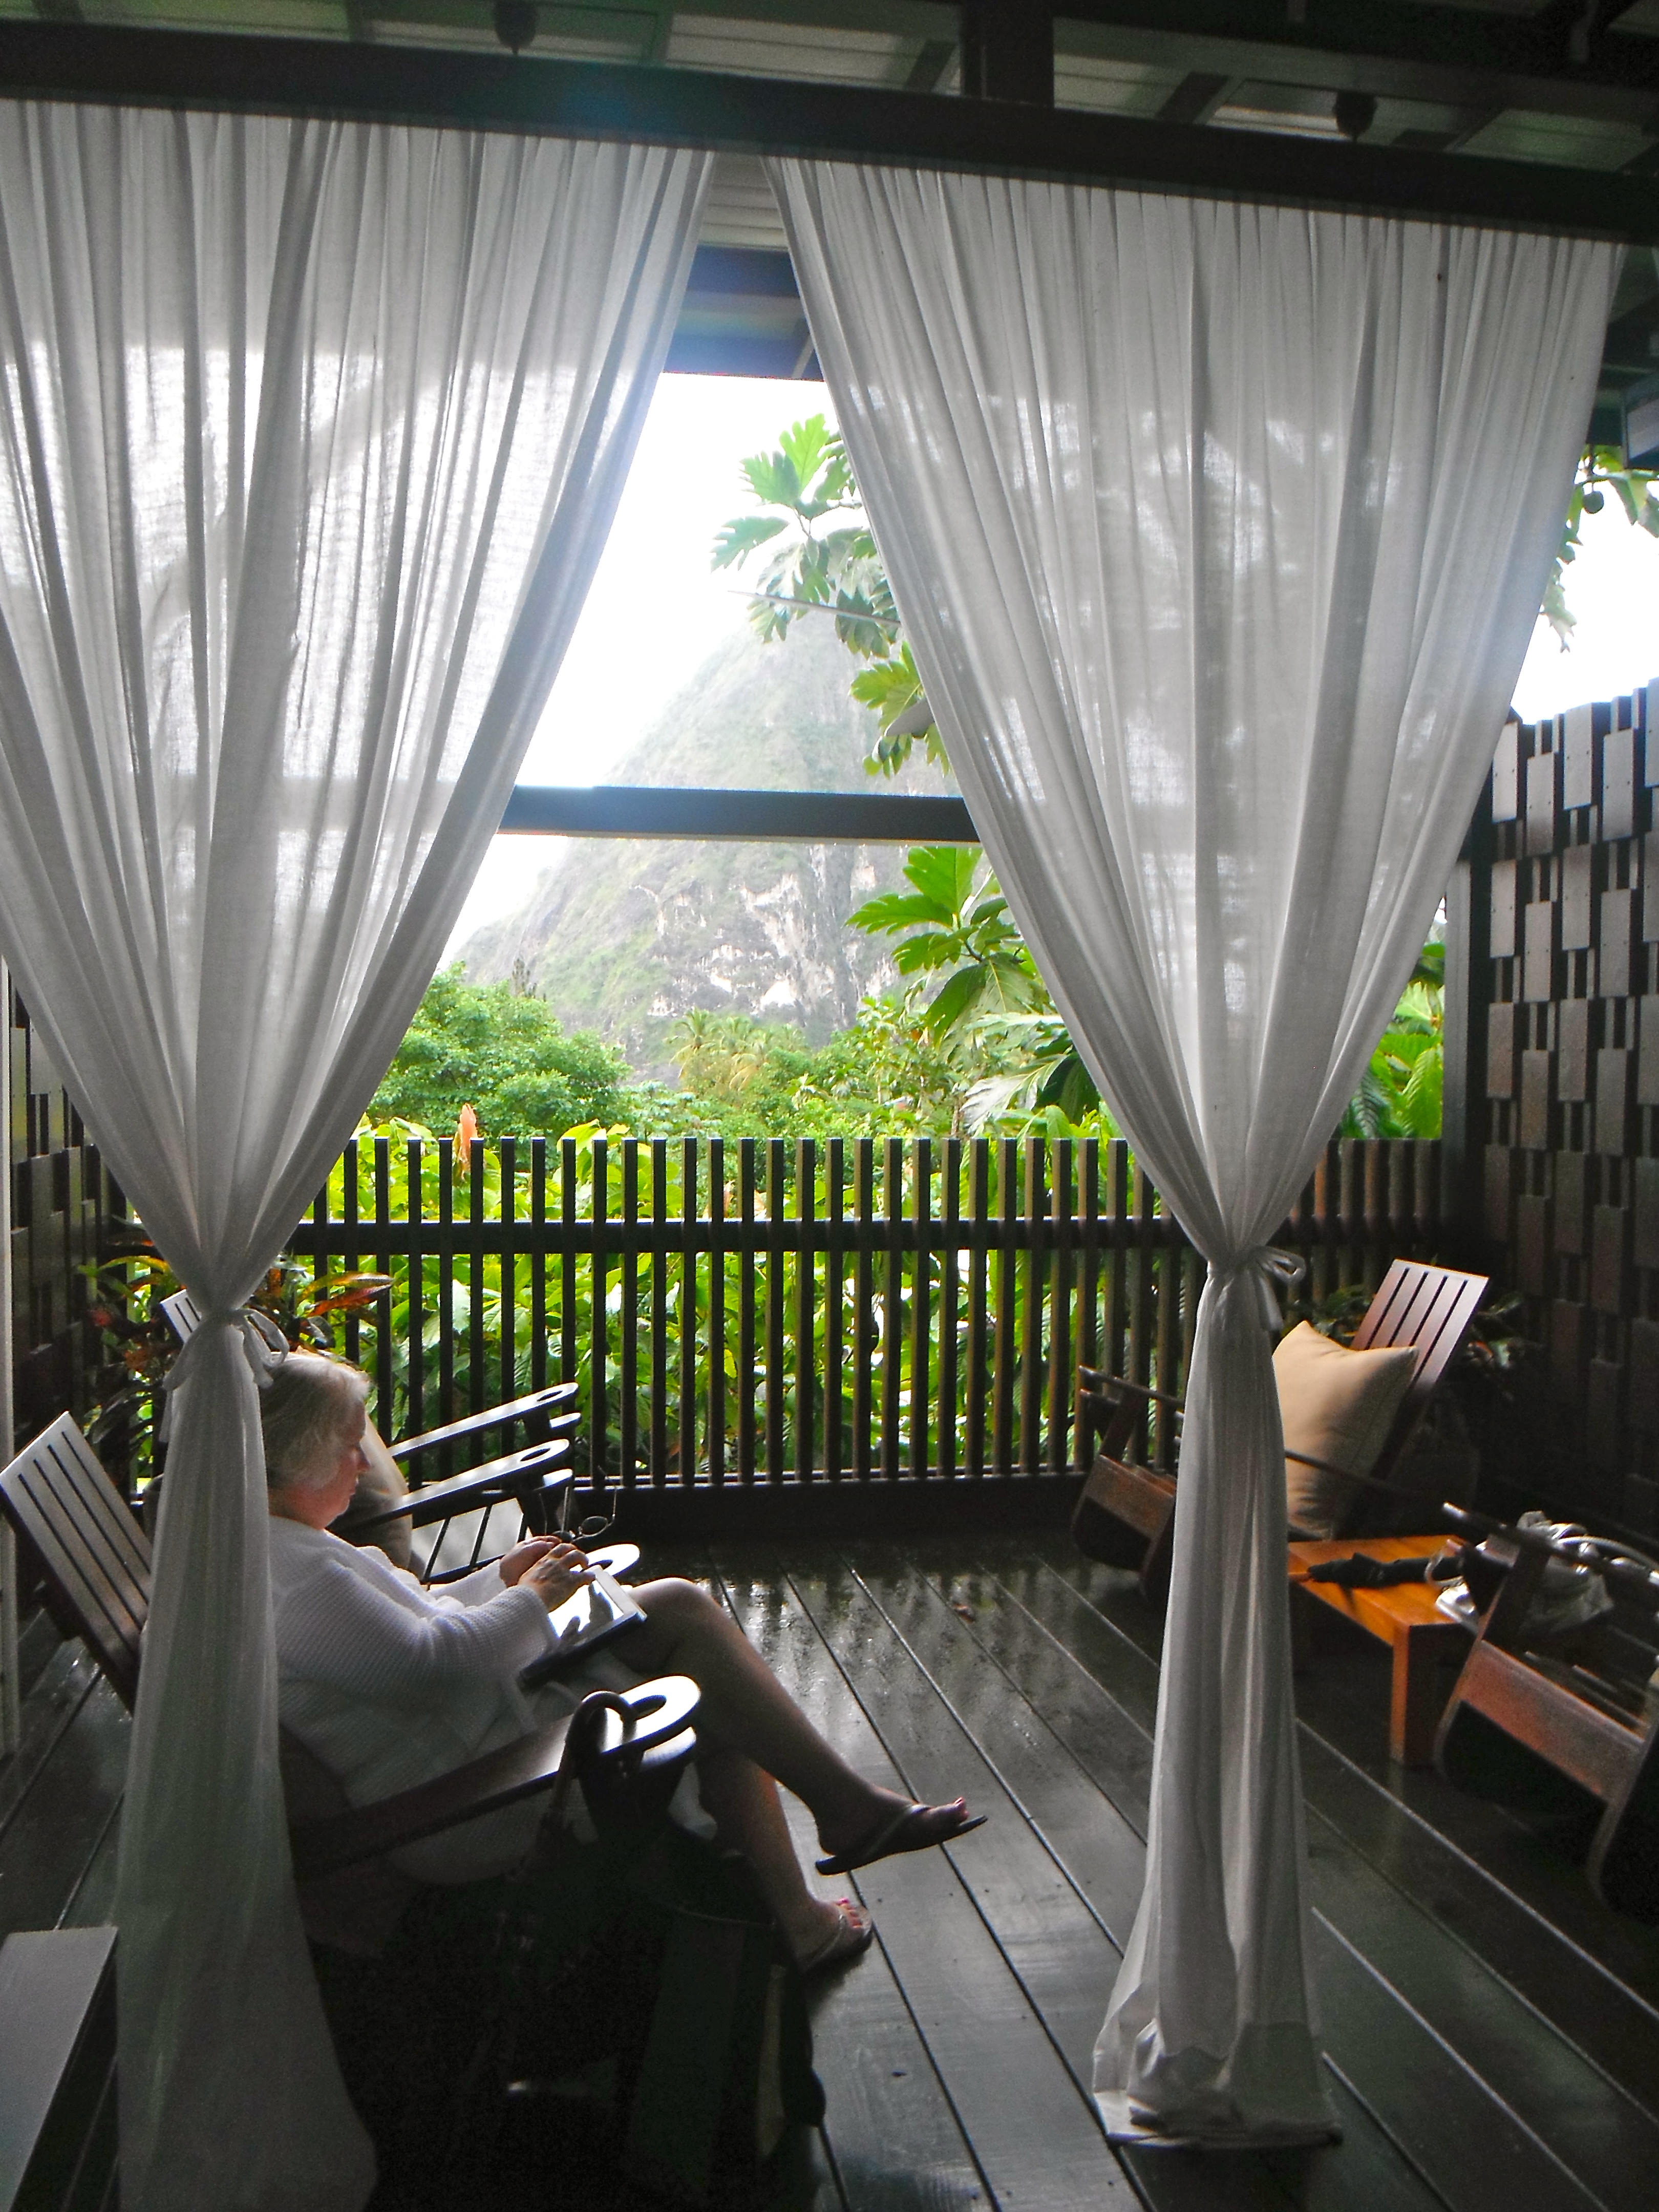 Waiting room at the Hotel Chocolat Boucan spa in St. Lucia with magnificent view of the Grand Piton